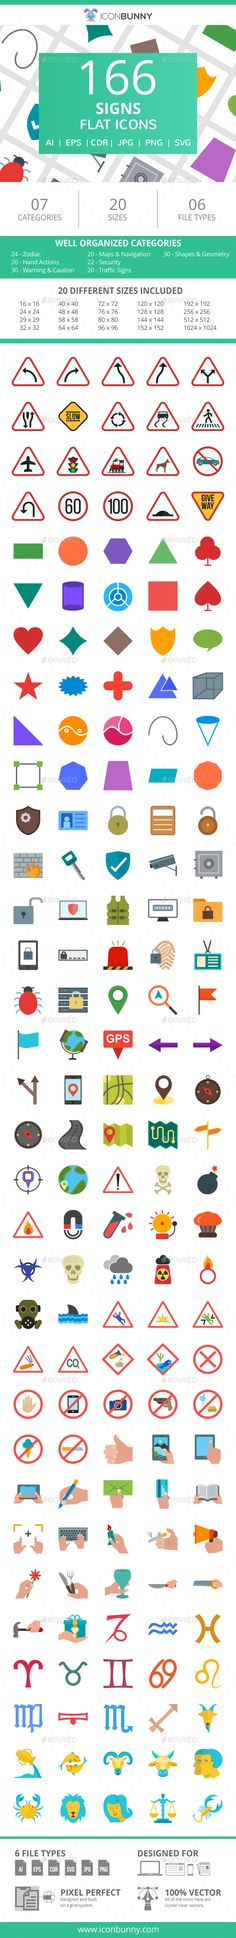 166 Sign #Flat #Icons - Icons. This set includes Zodiac, Flags, Hand Actions, Warning & Caution, Maps & Navigation , Security, Traffic Signs, Shapes & Geometry flat icons. With 166 icons, Iconbunny provides the most essential icons which can be used on all types of platforms including mobile apps, web and graphic design. Each icon is available in different file formats to cover all your needs.